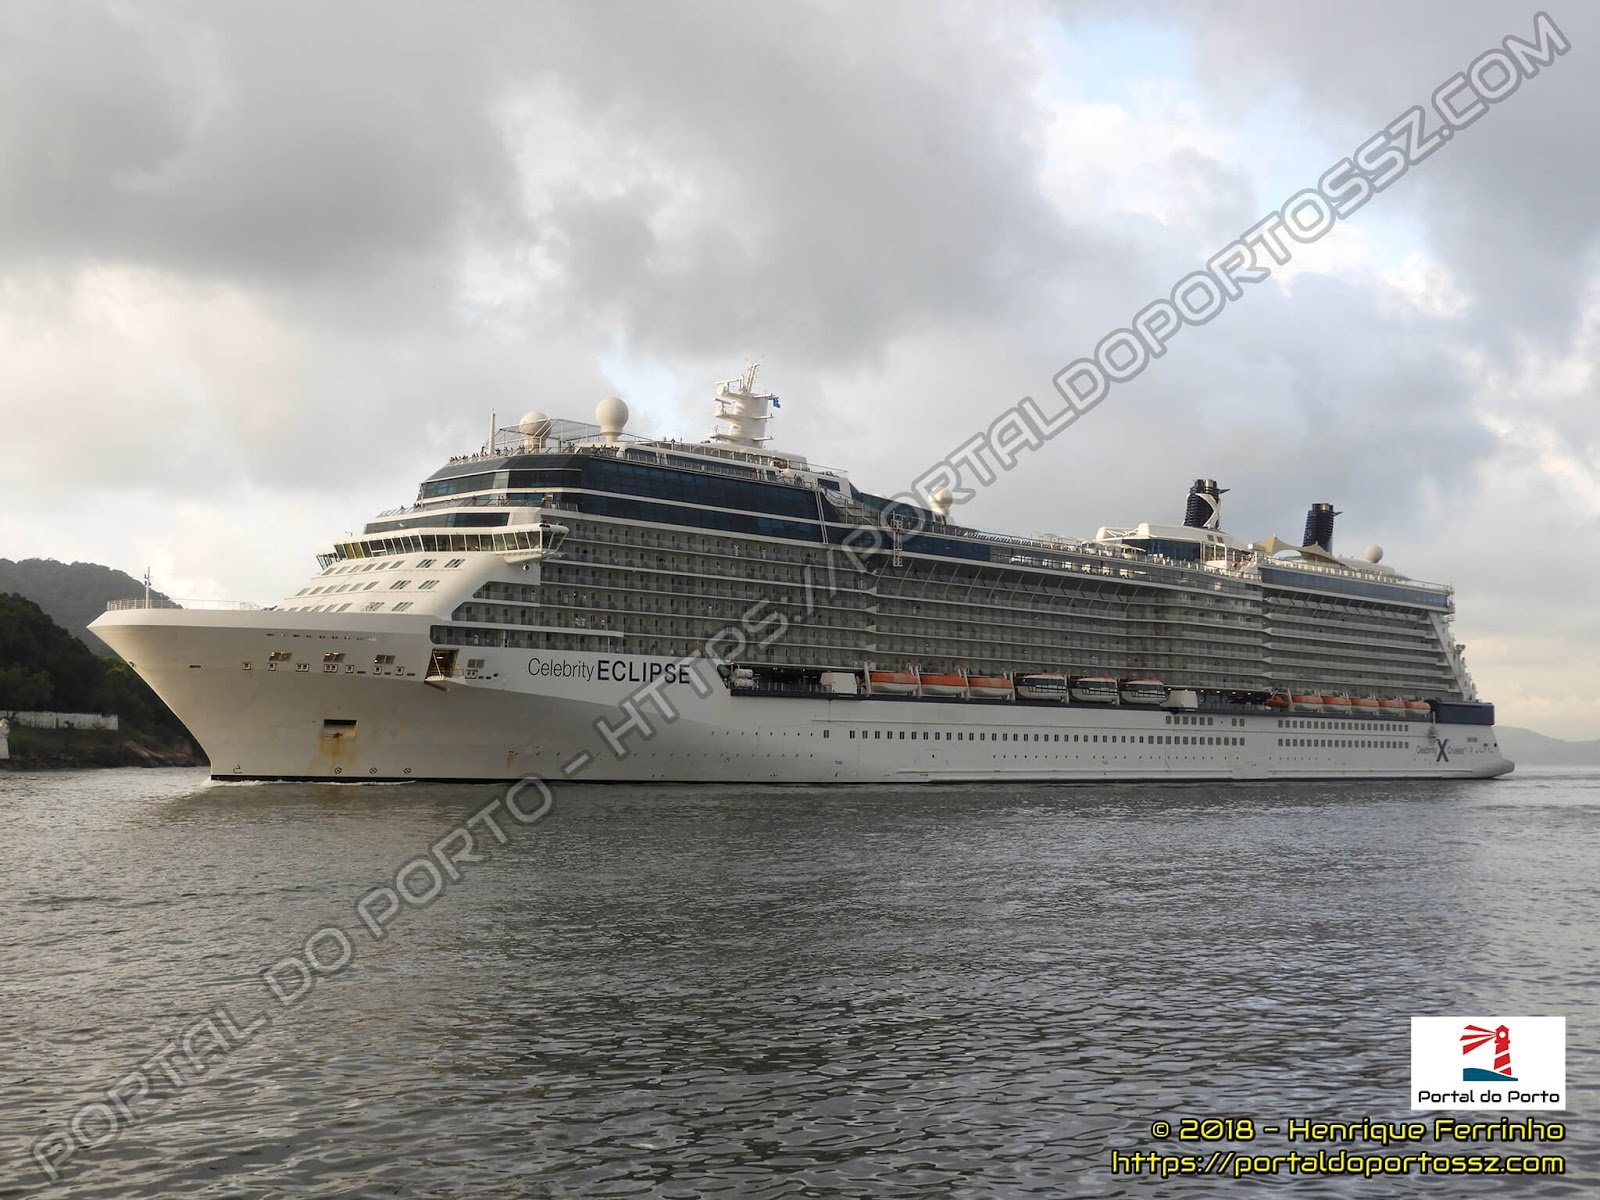 Reviews of Celebrity Eclipse - Cruise Travel Information